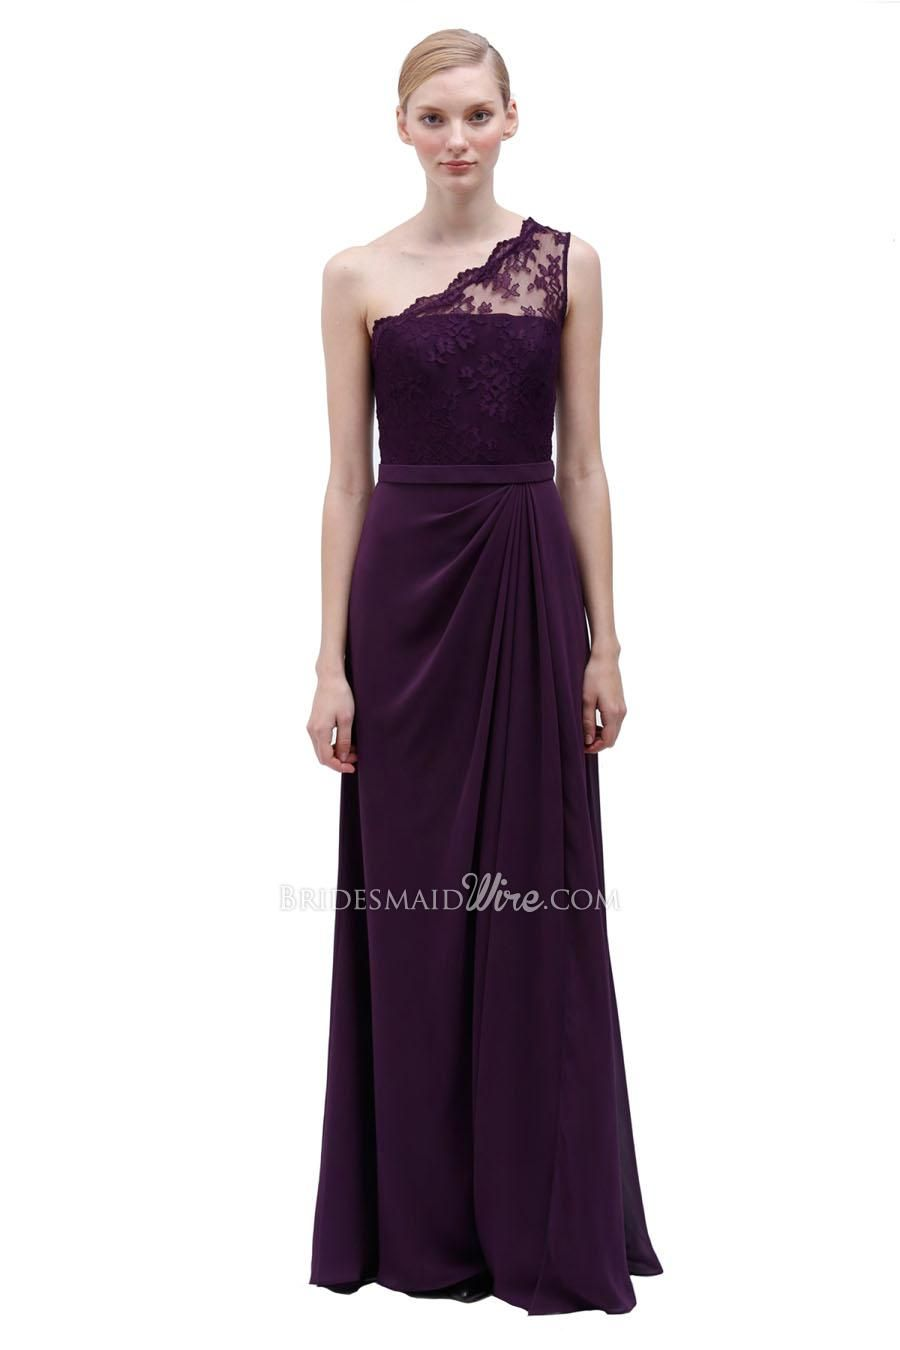 b82821c46a9ae Plum Lace Top One Shoulder Floor Length Chiffon Bridesmaid Dress at  Bridesmaidwire.com Item  19306 List Price    425.00 Our Price   177.00  Special Offer  ...